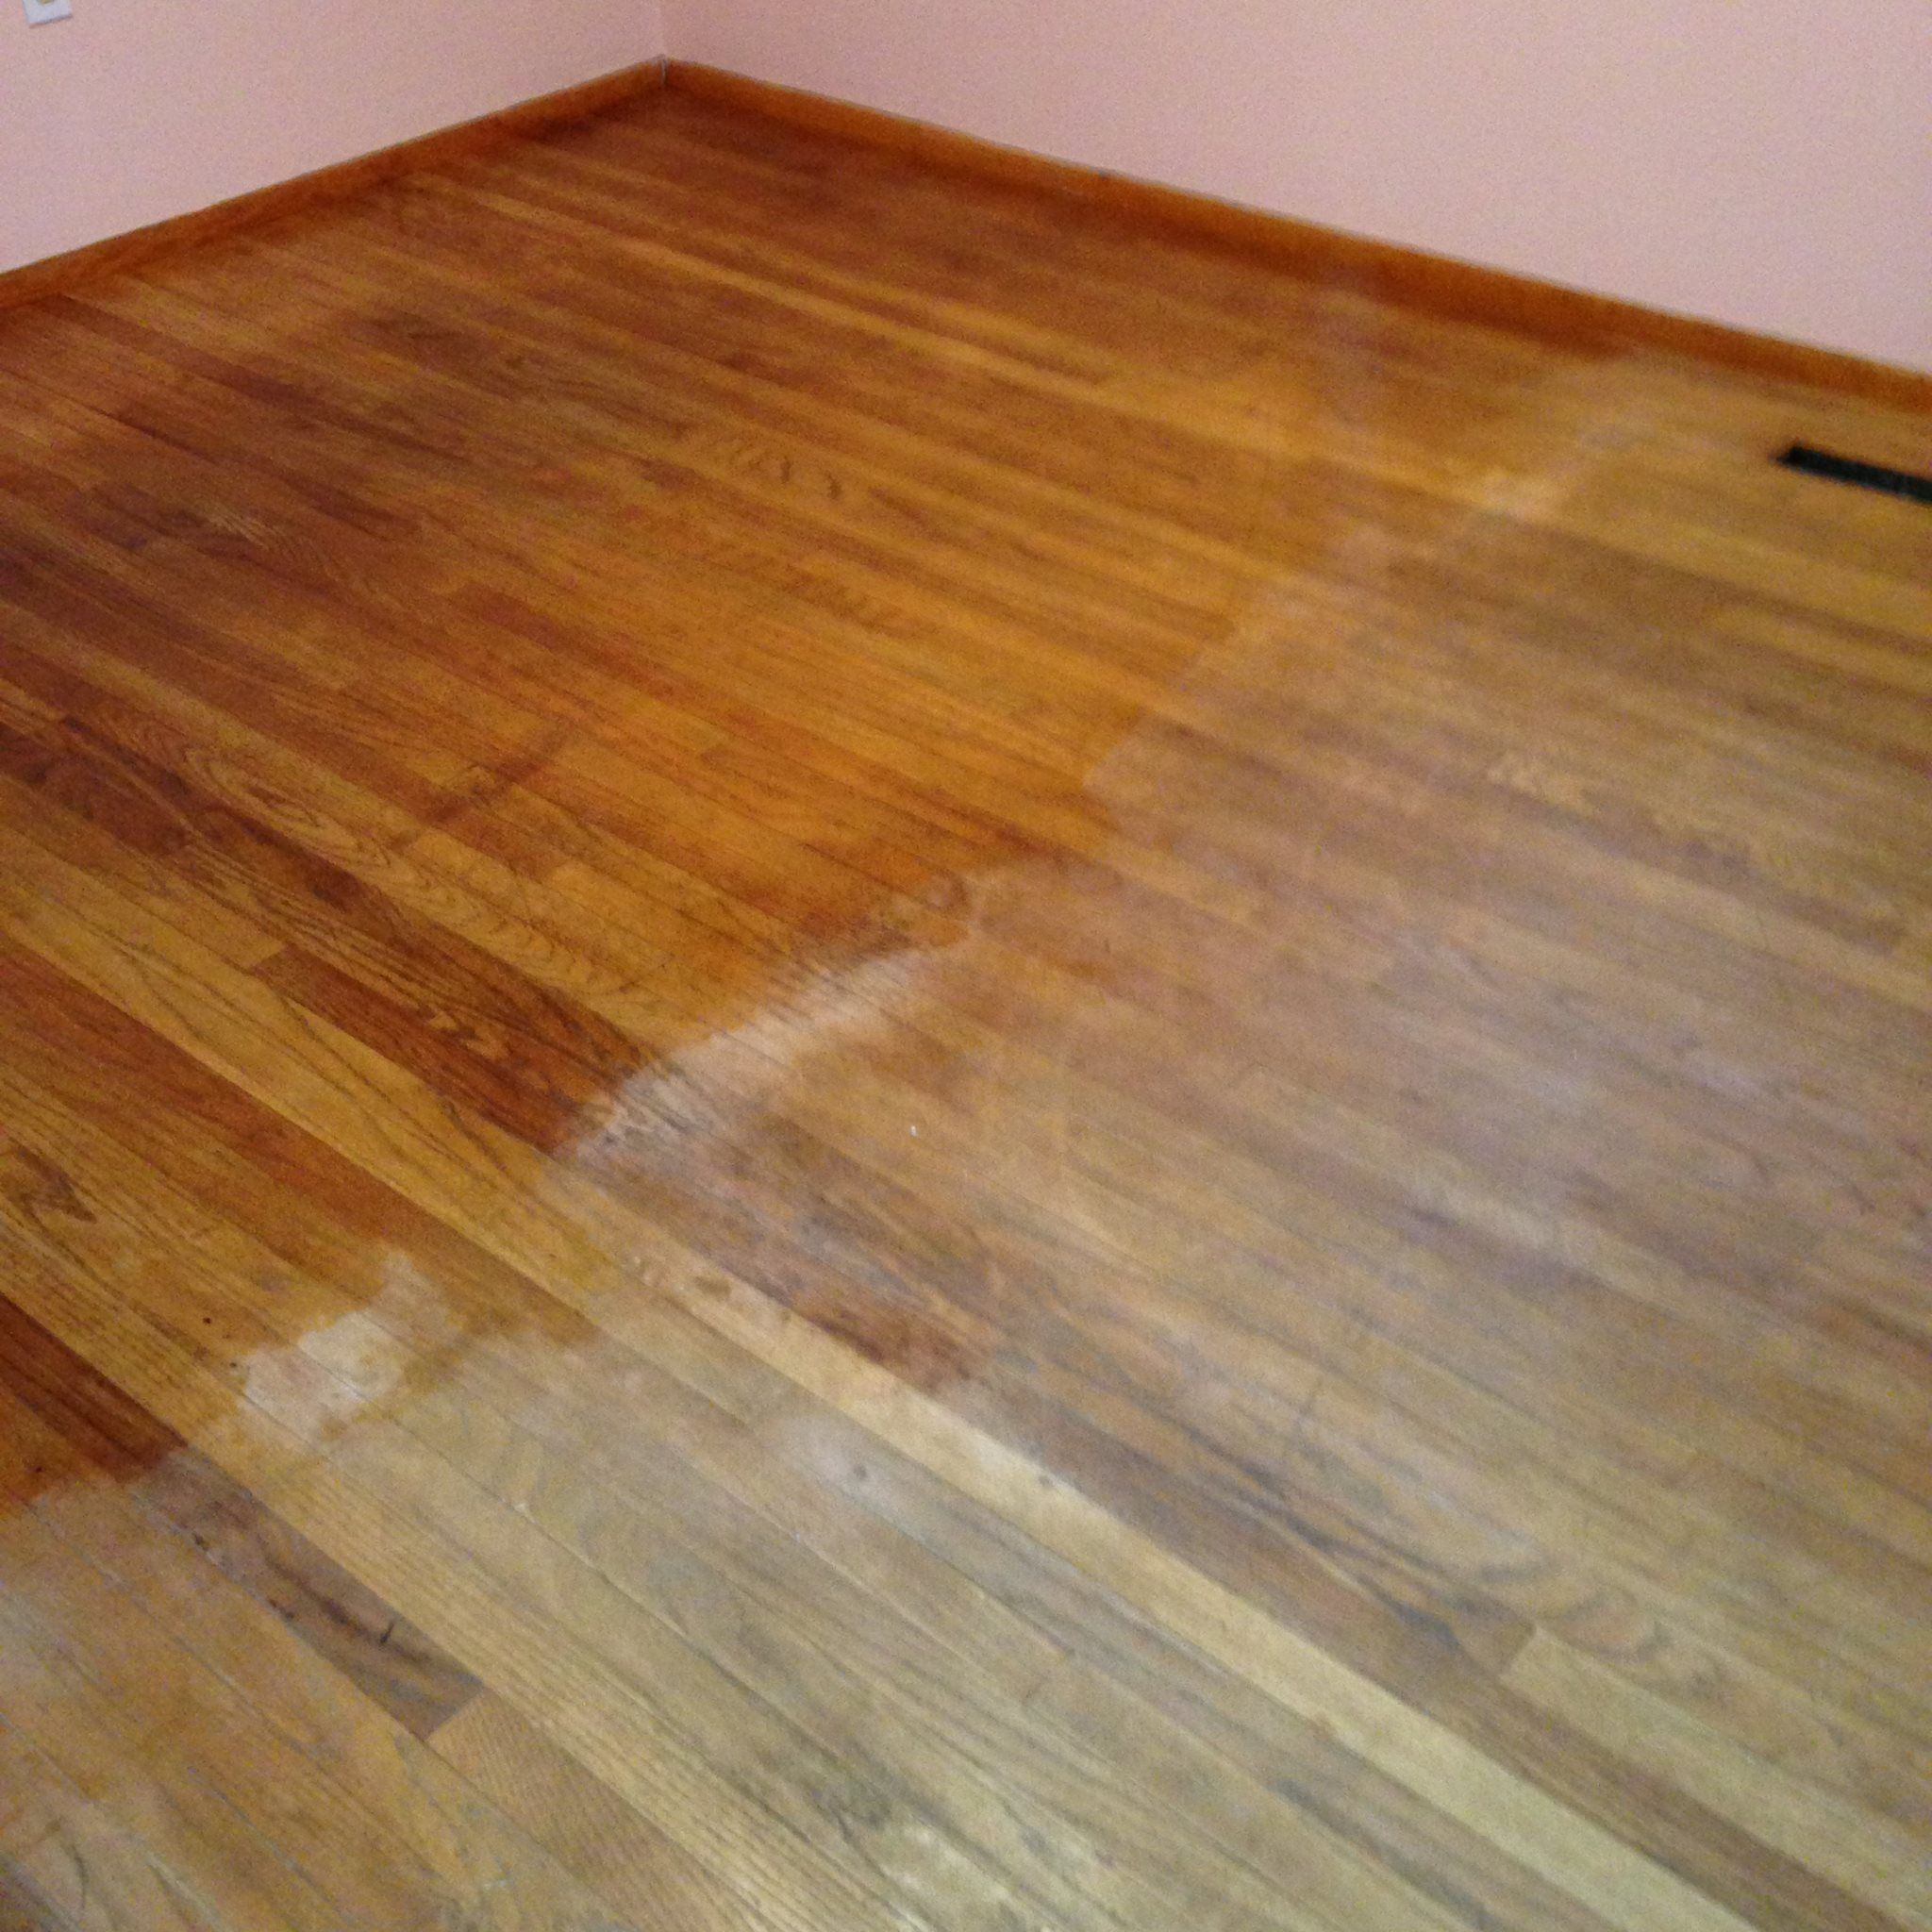 15 Wood Floor Hacks Every Homeowner